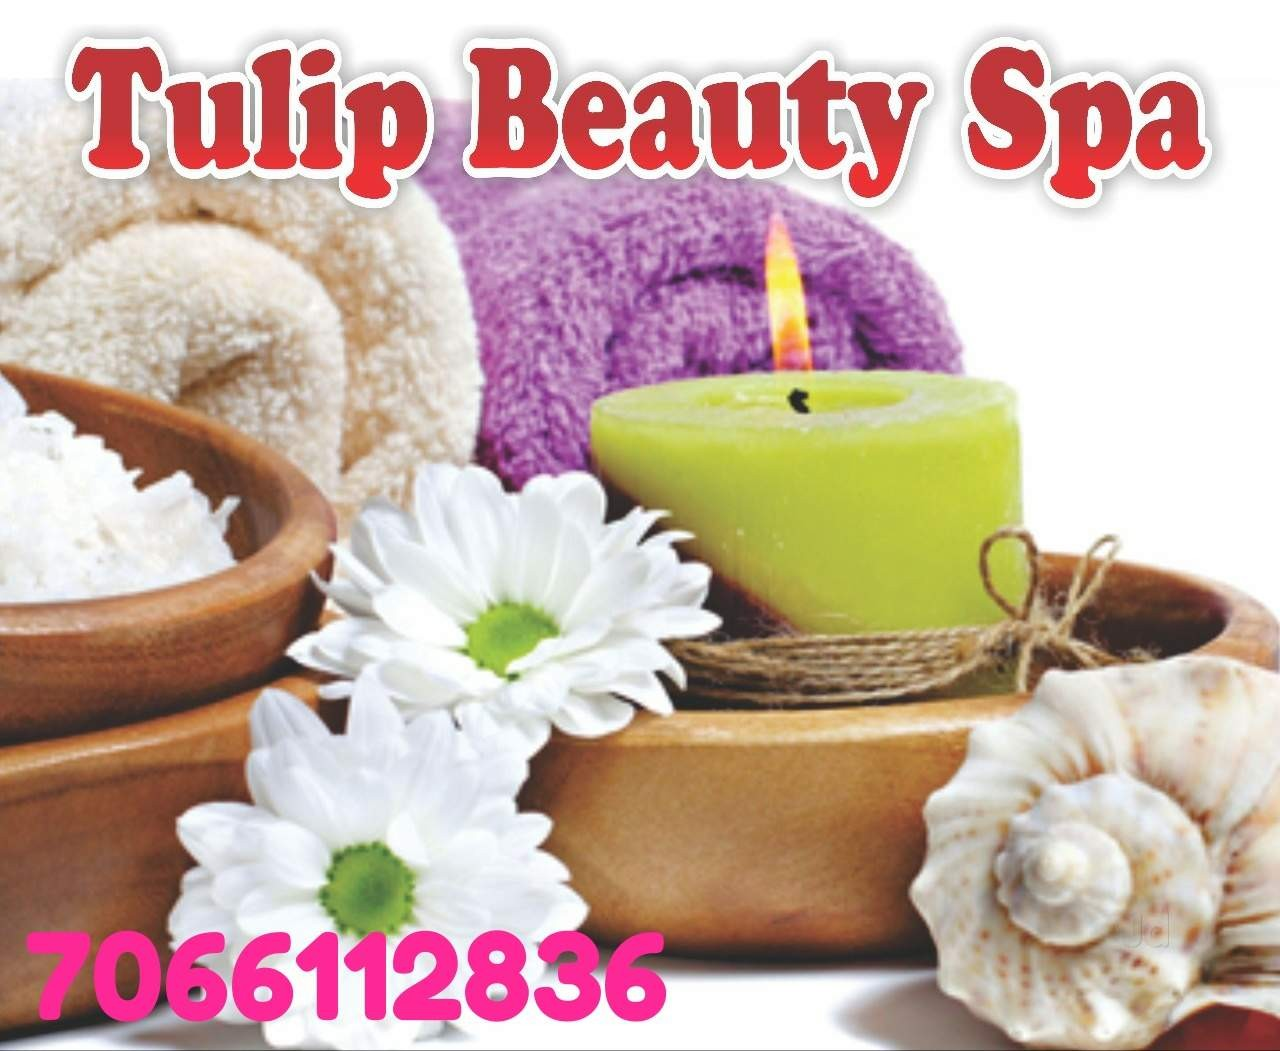 Tulip Beauty Spa